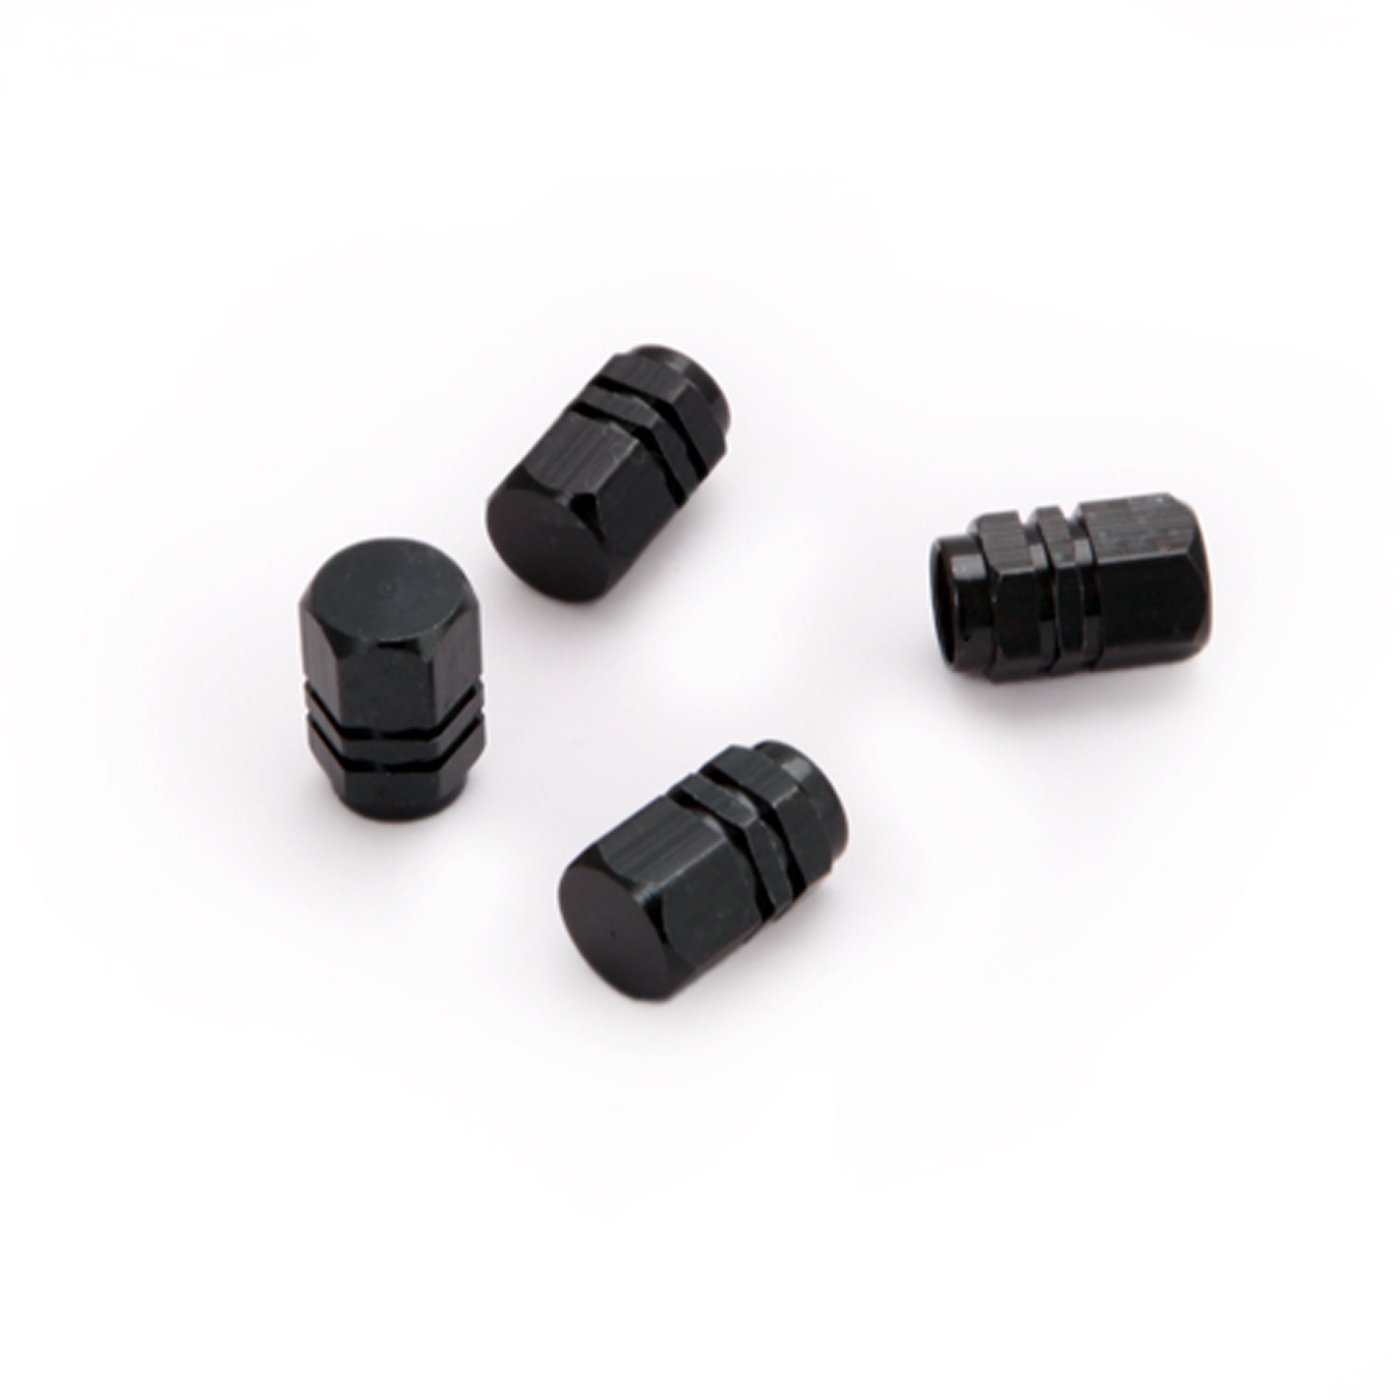 Aluminum Material Hexagon Car Tire Valve Caps 4 Pcs/set (Black)